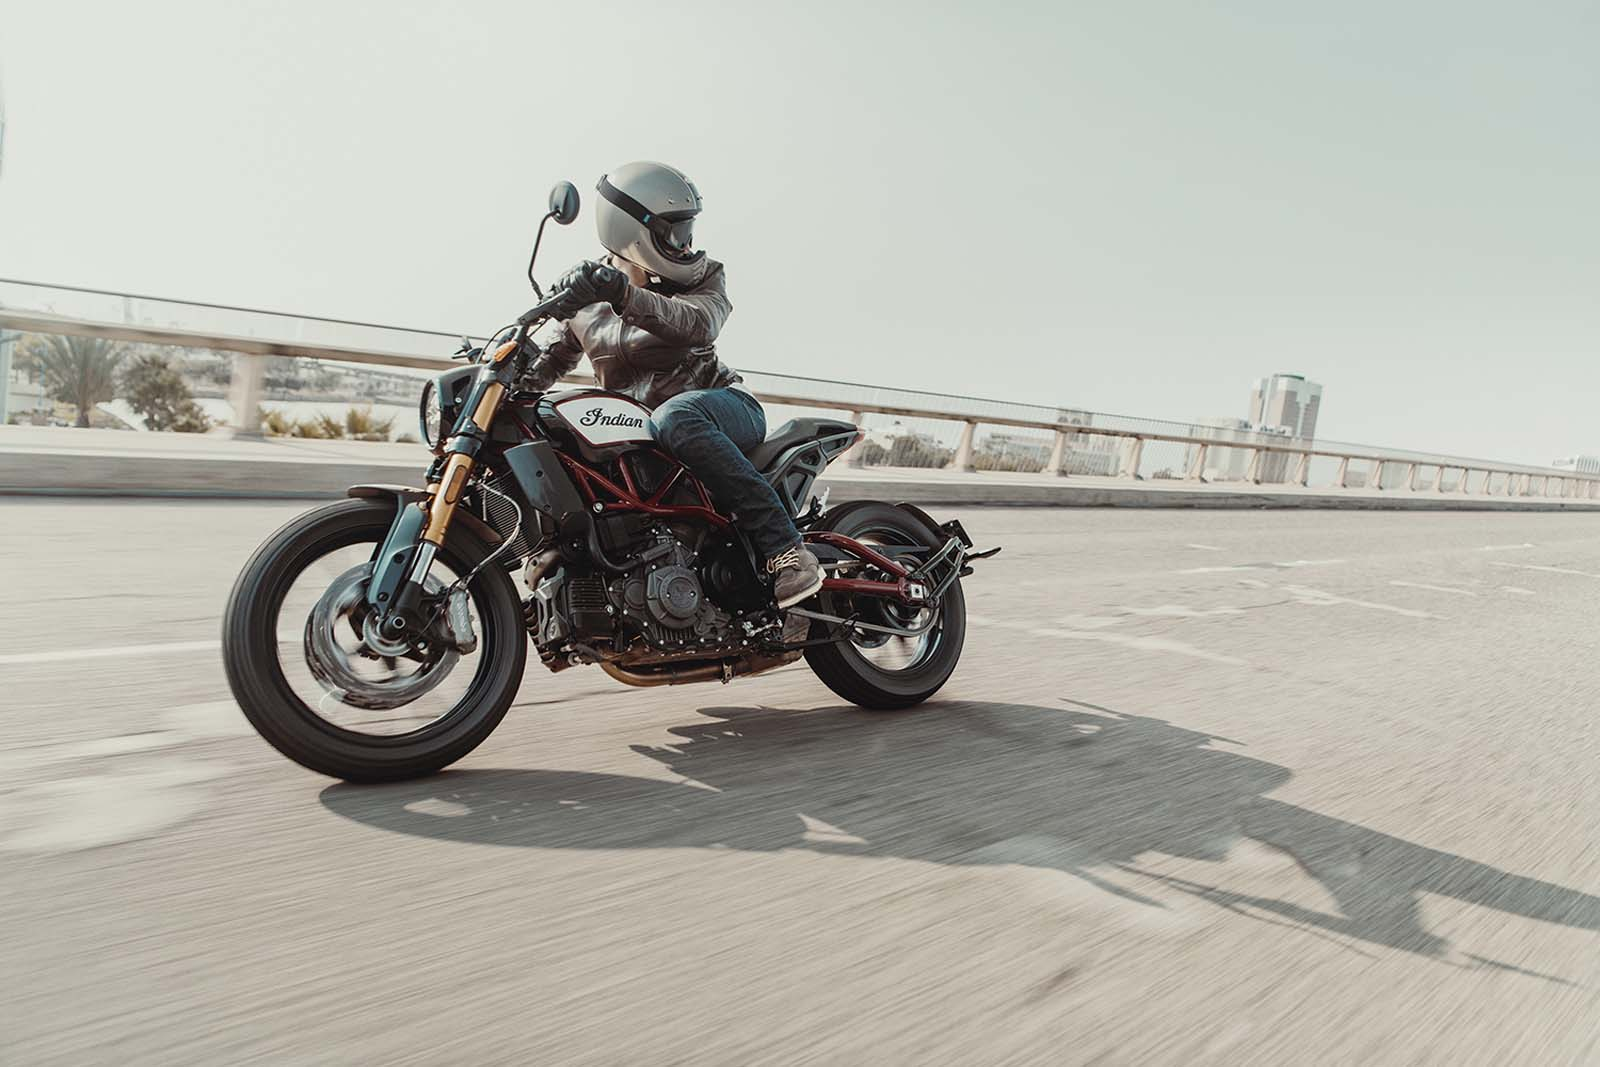 2019 Indian FTR 1200 S First Look Review | Motorcyclist